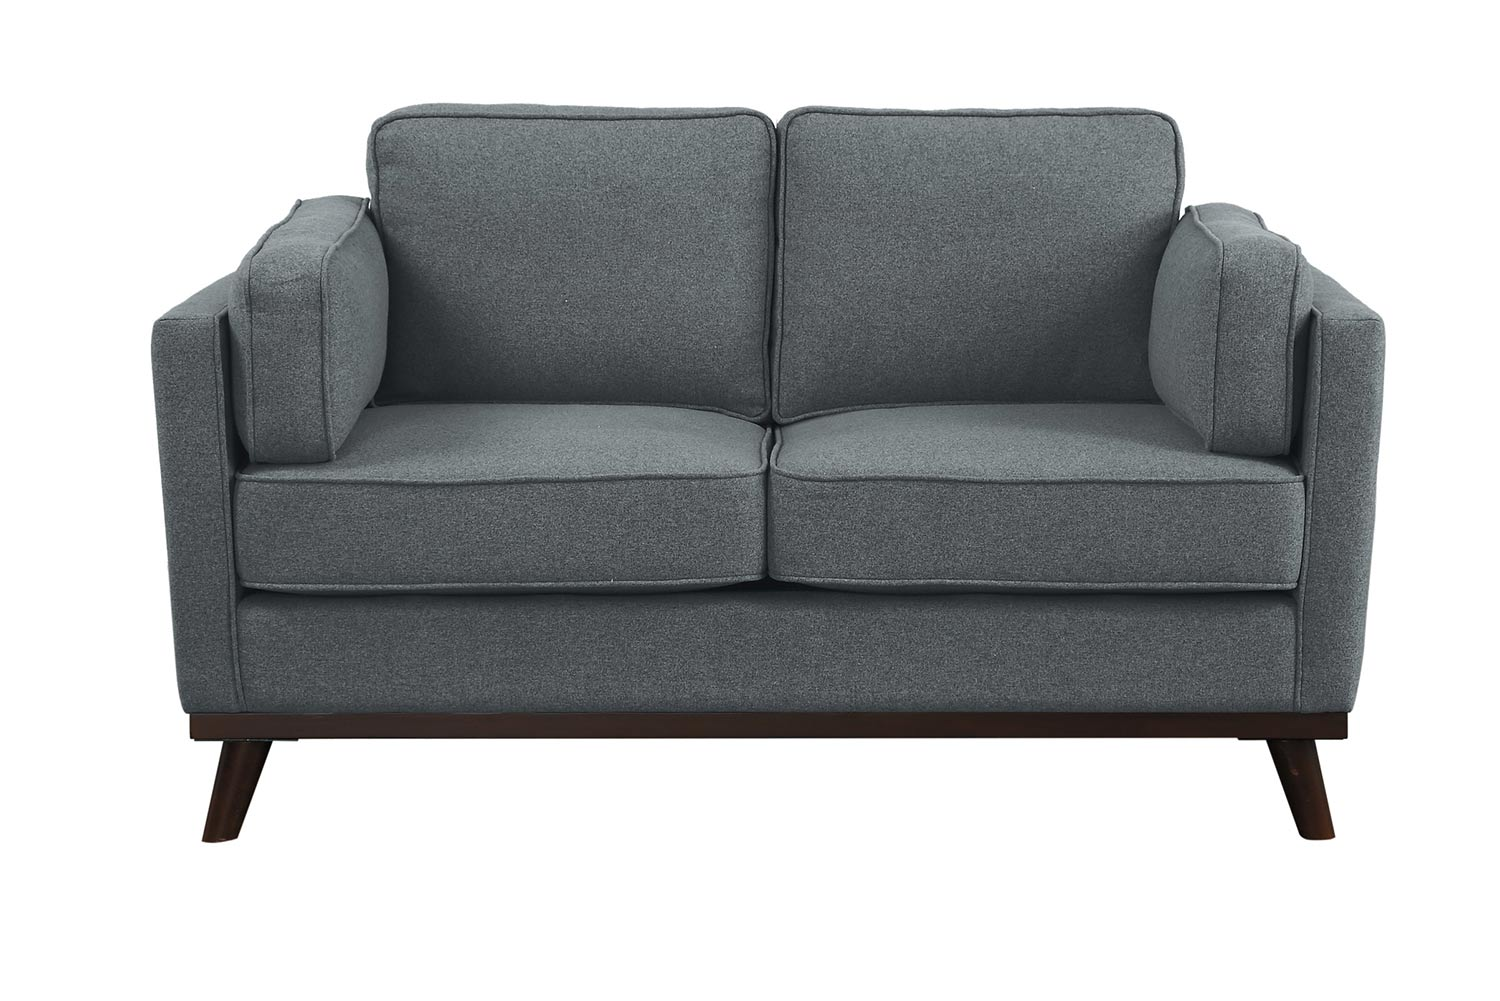 Homelegance Bedos Love Seat - Gray